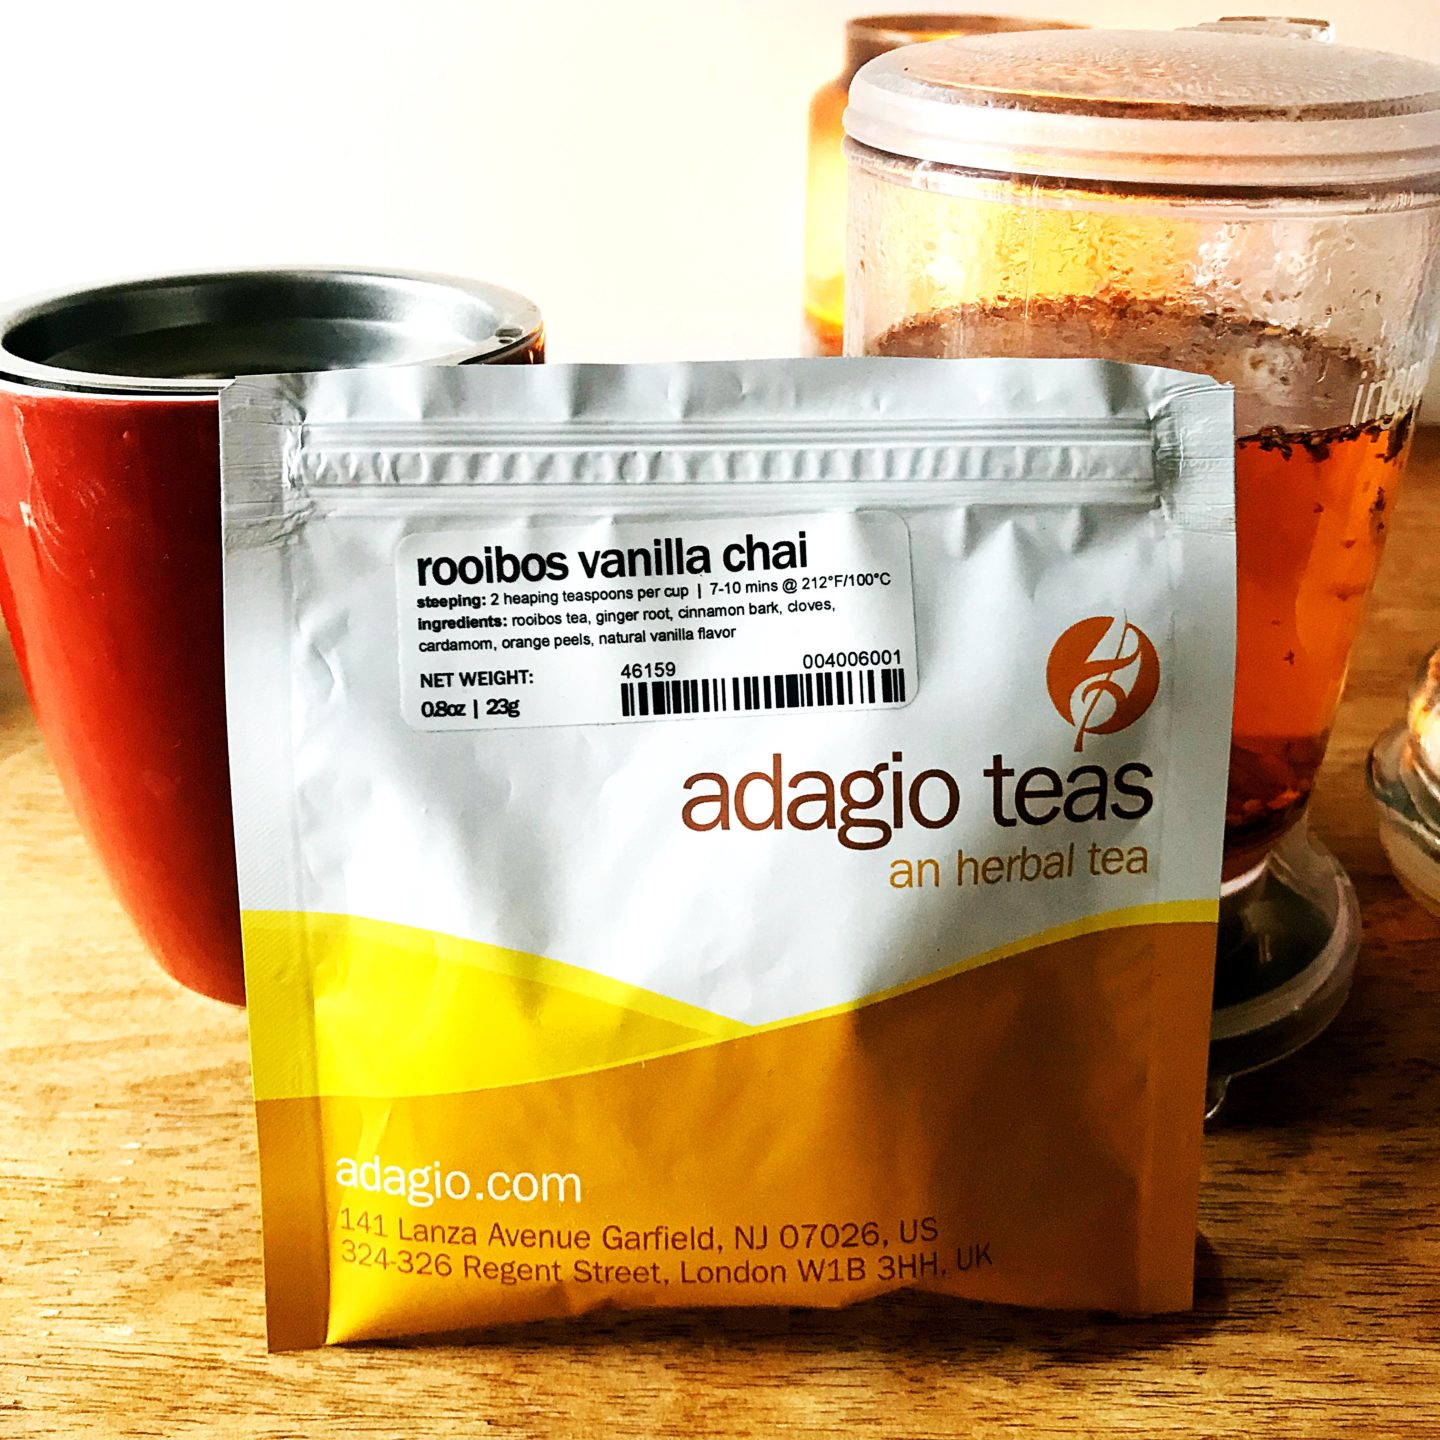 adagio teas, loose leaf tea blends, loose leaf tea, loose leaf storage, loose leaf tea packaging, loose leaf tea infusers, loose leaf tea, loose leaf tea benefits, loose leaf tea guide, loose leaf tea brand, brands,waste free living, waste free products, zero waste lifestyle, zero waste living, zero waste tips,zero waste products, zero waste swaps